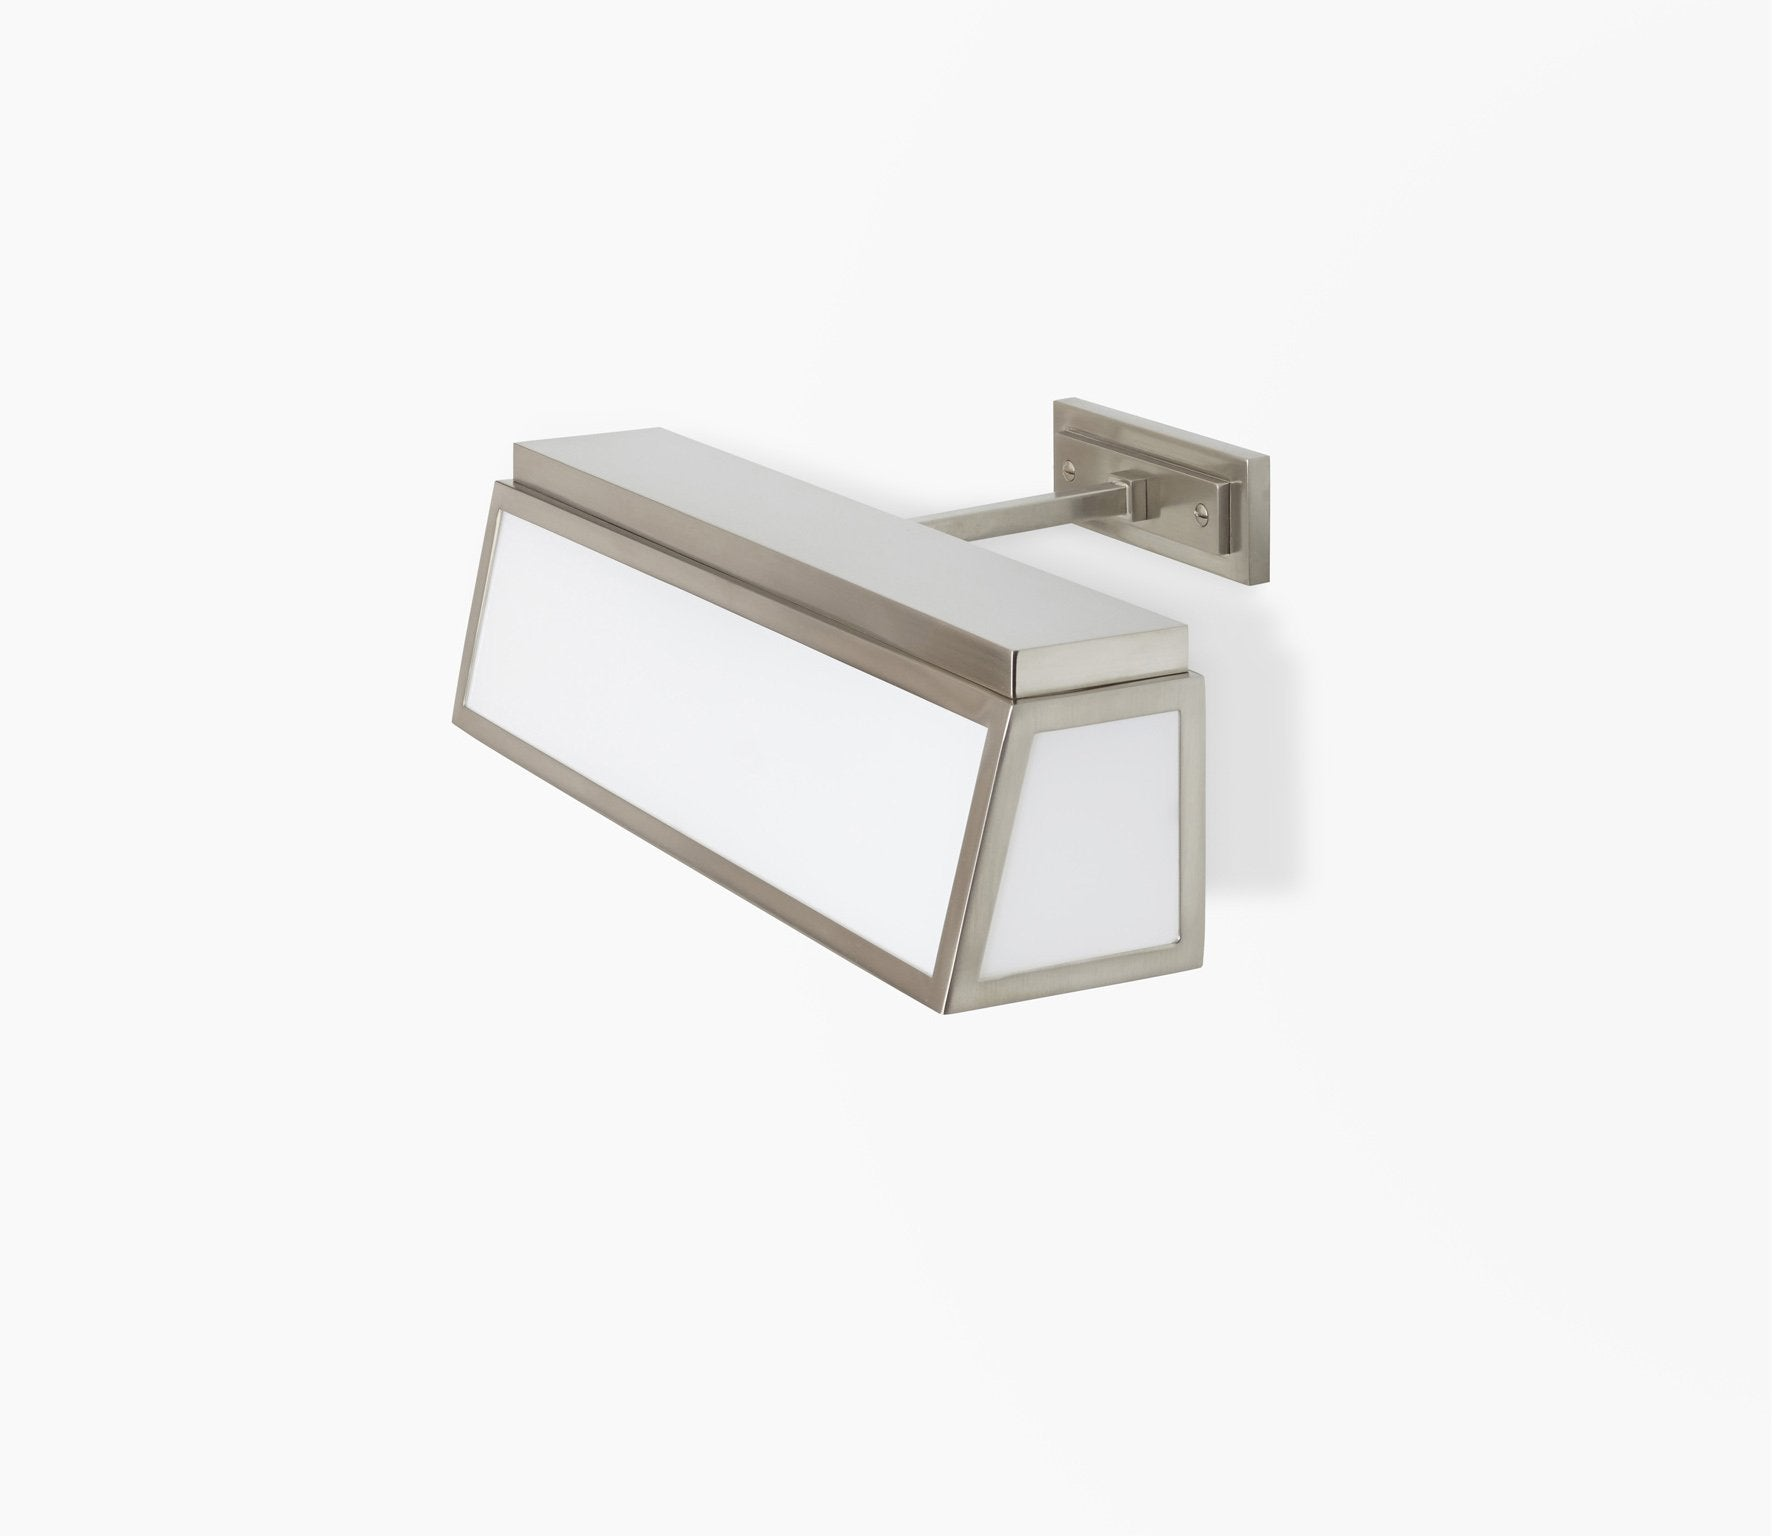 Strand Wall Light Product Image 2